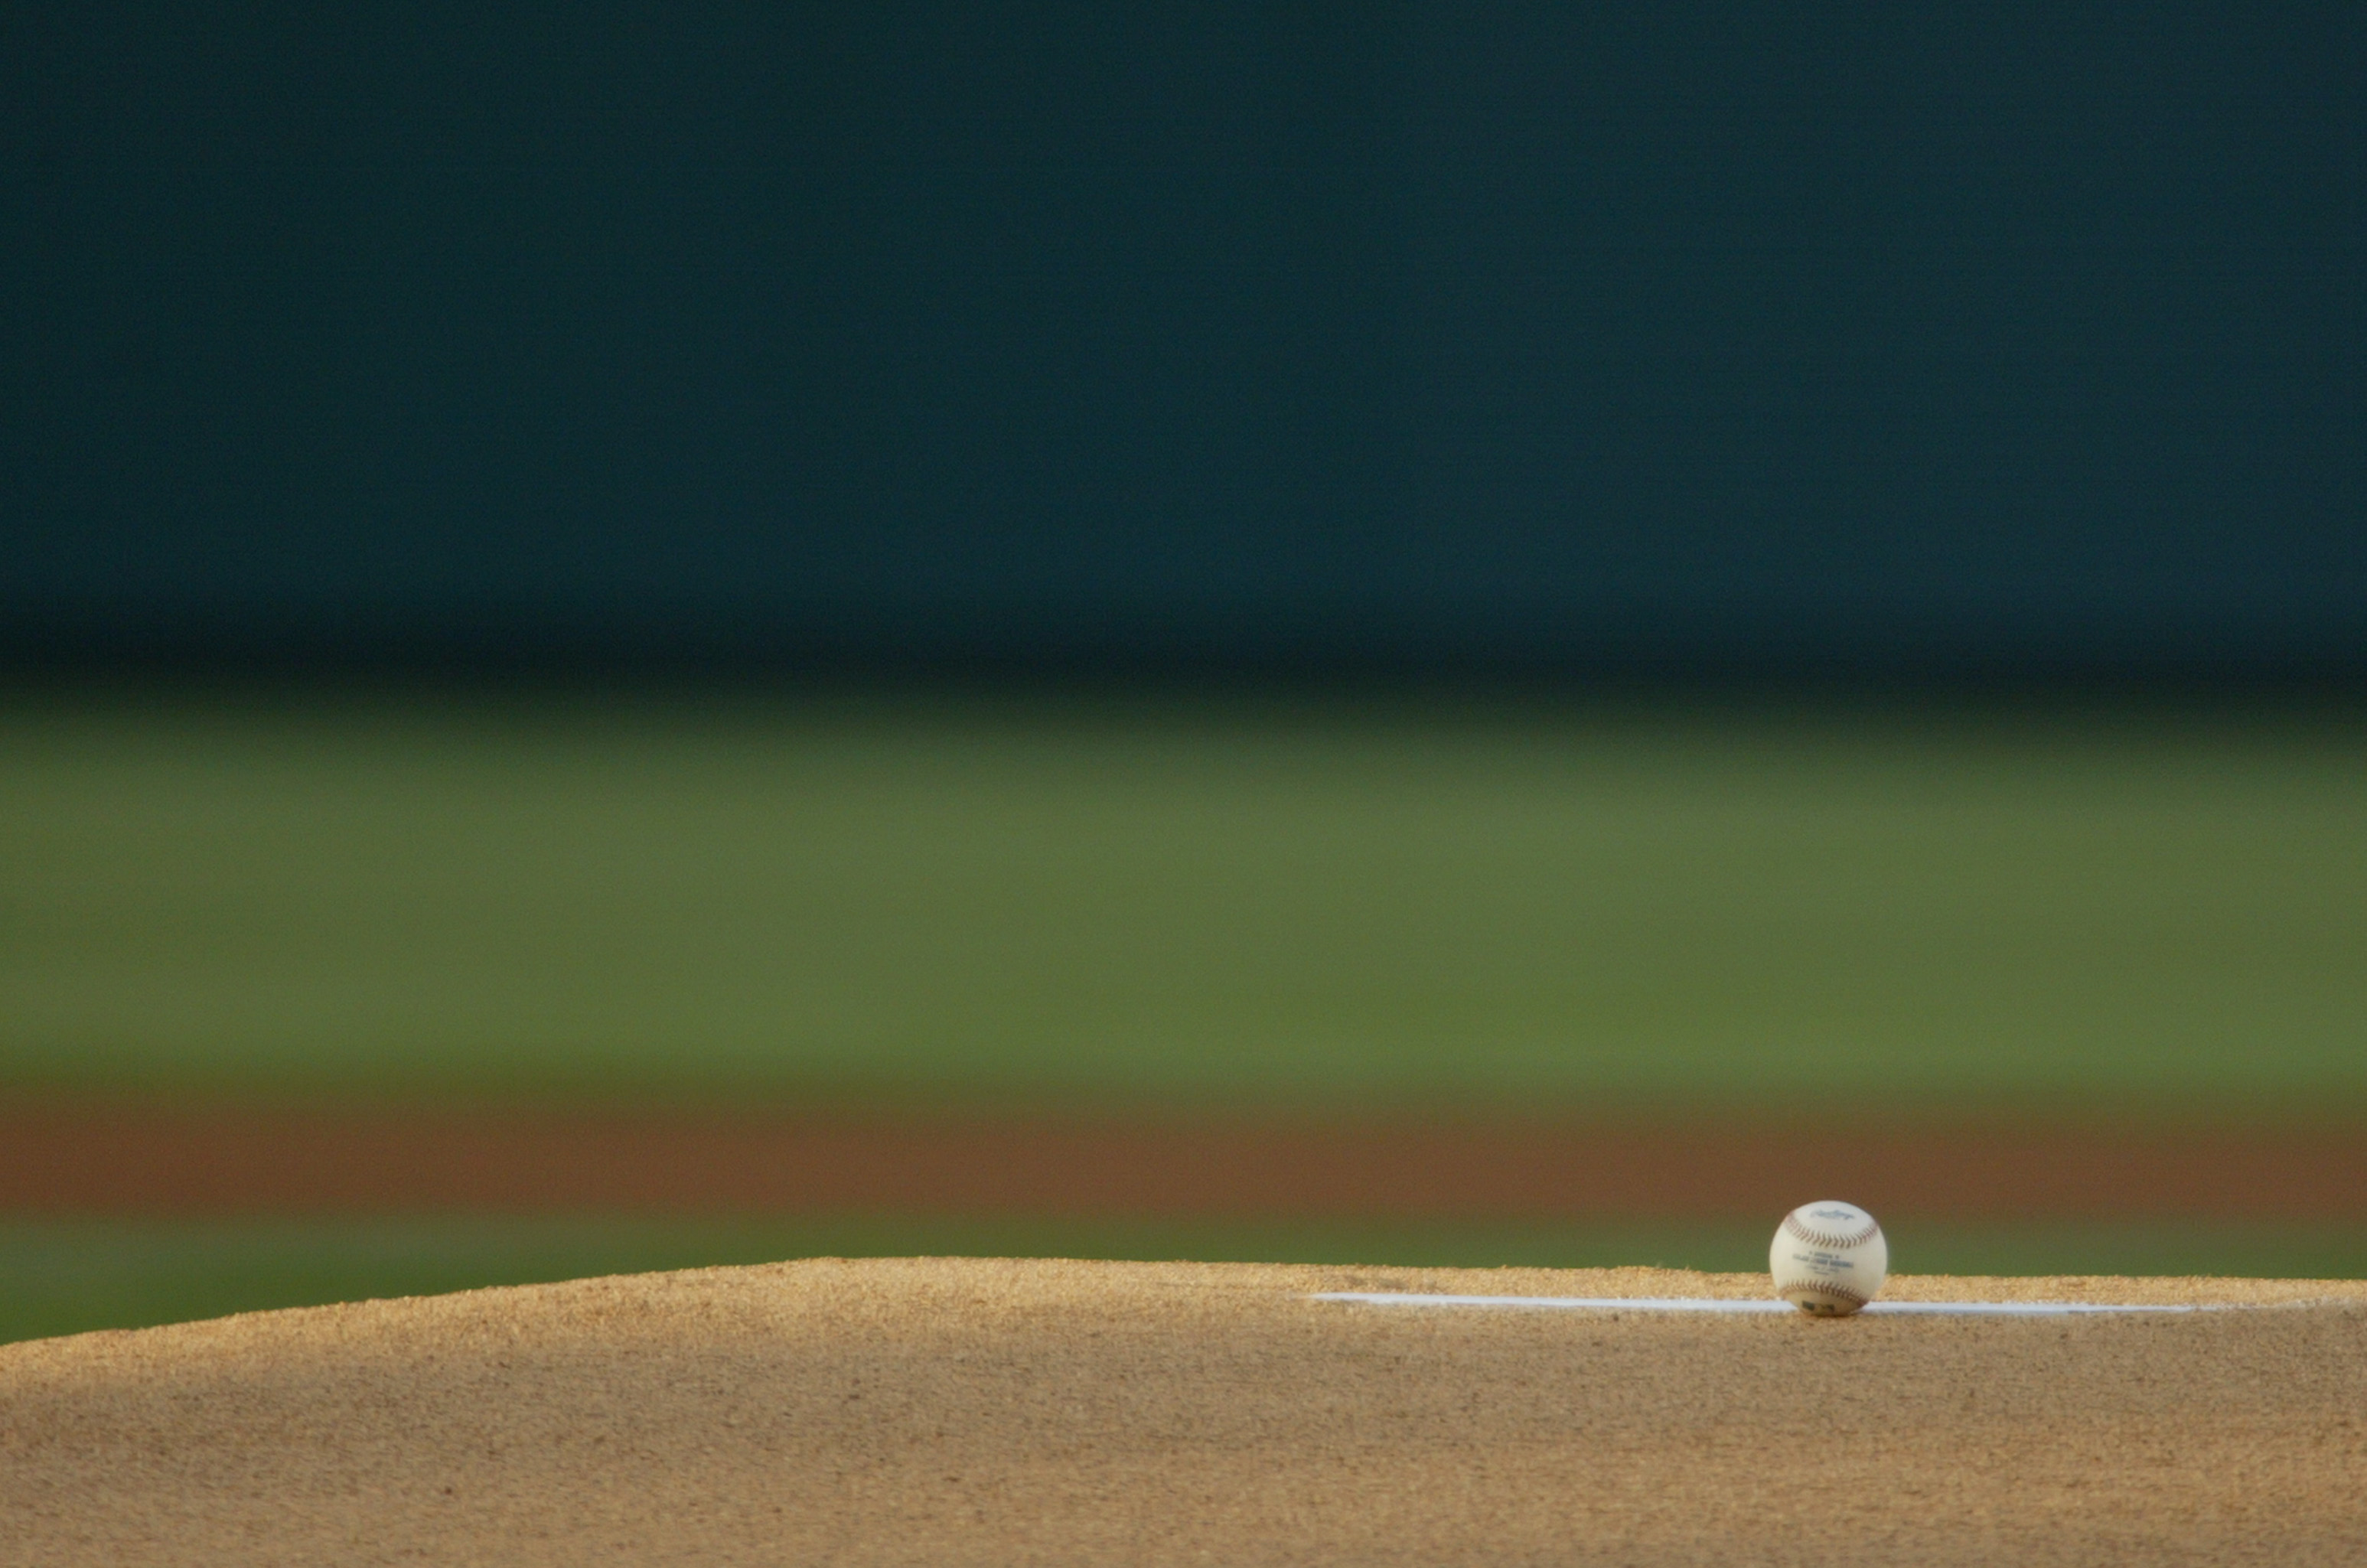 ANAHEIM, CA - JUNE 3:  The baseball rests on the pitcher's mound during the game between the Cleveland Indians and the Anaheim Angels at Angel Stadium on June 3, 2004 in Anaheim, California.  The Angels won 5-2.  (Photo by Lisa Blumenfeld/Getty Images)